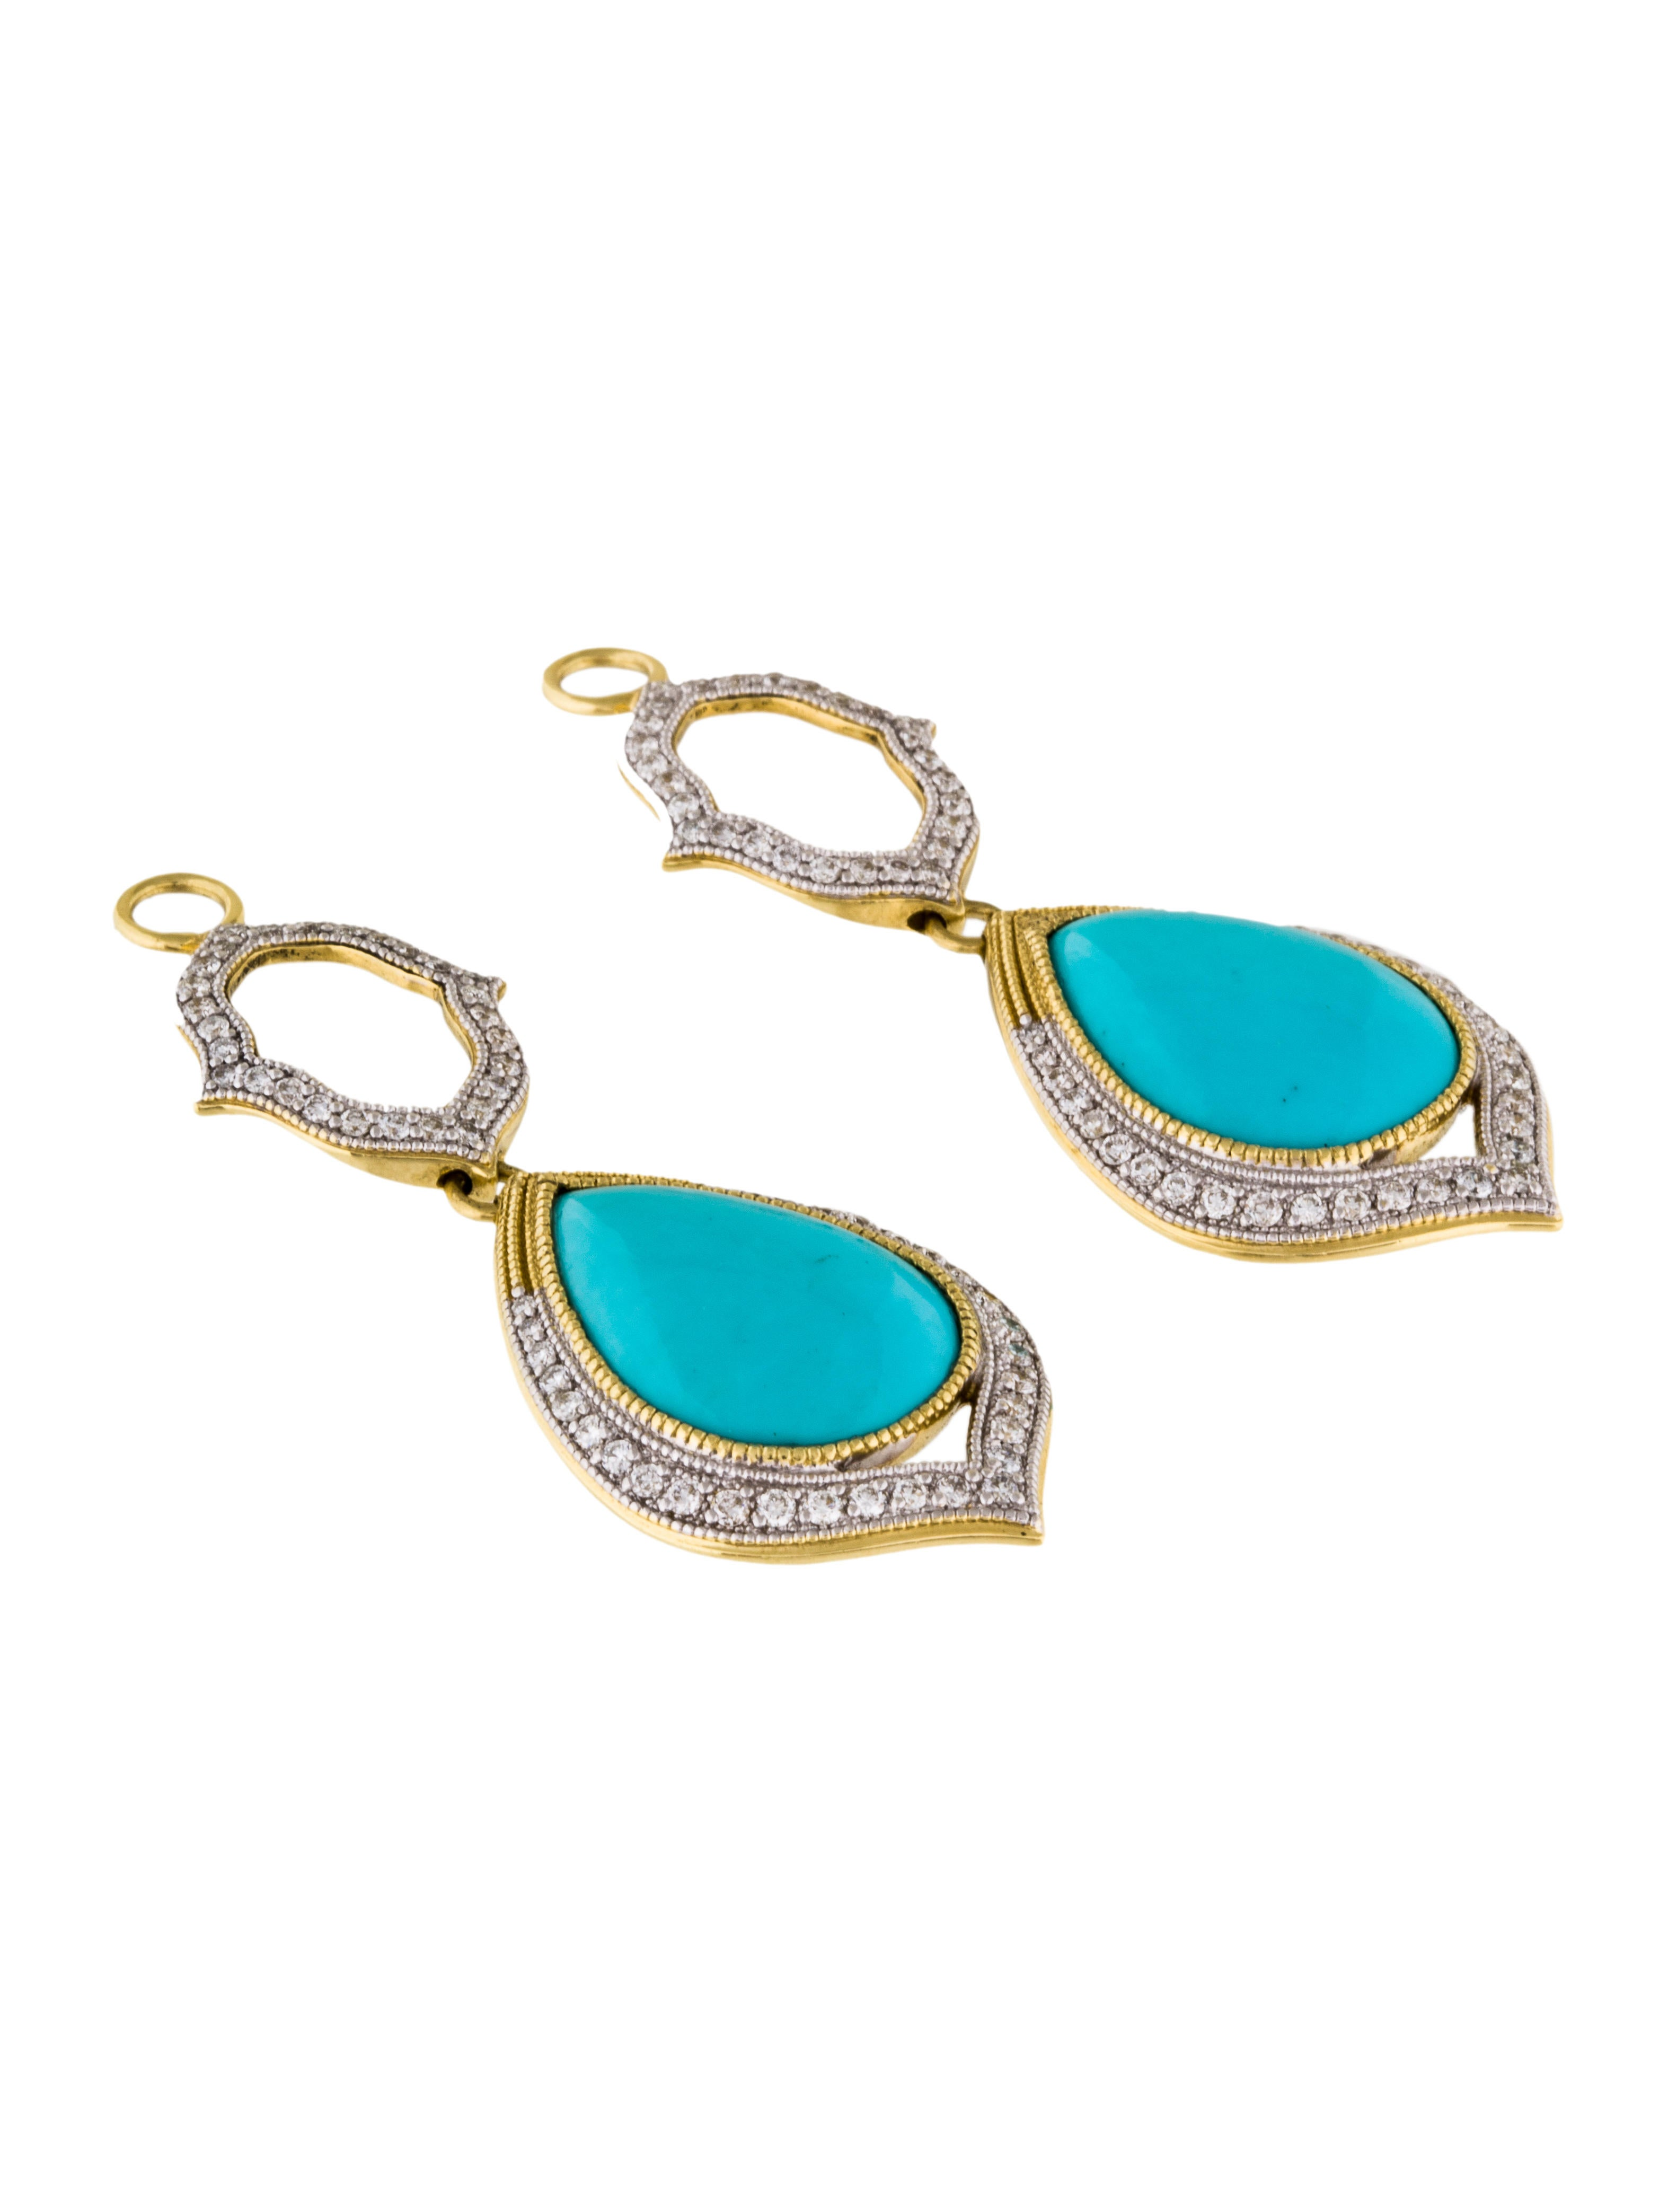 10 Kitchen And Home Decor Items Every 20 Something Needs: Jude Frances Open Moroccan Double Drop Turquoise Earring